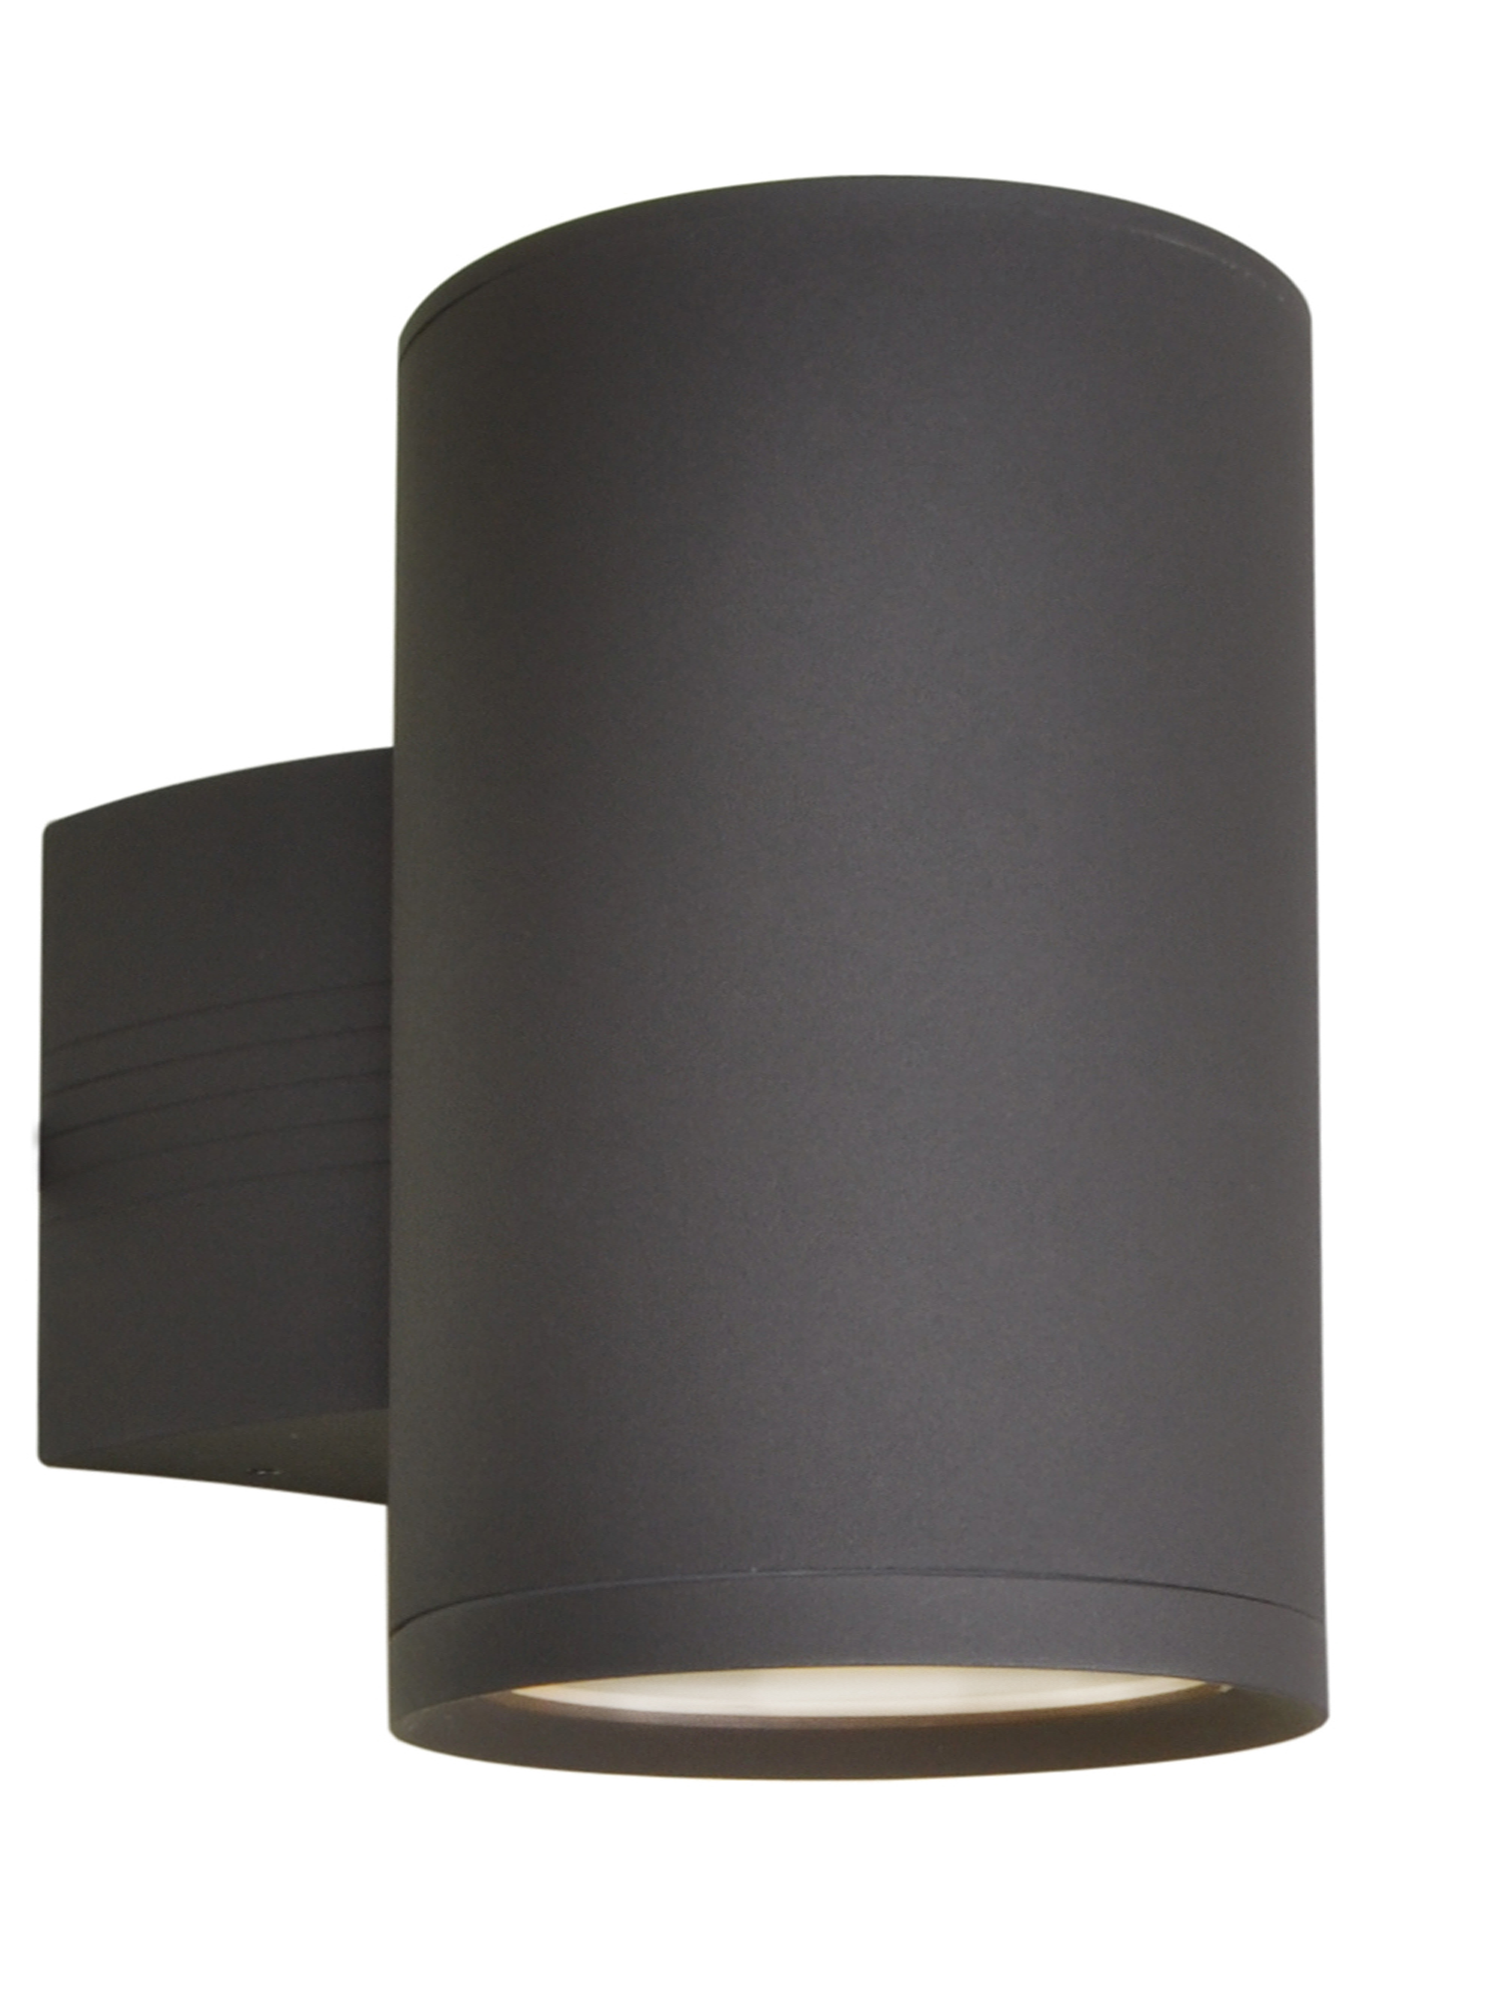 Plain Outdoor Wall Sconce by Maxim Lighting 6101ABZ